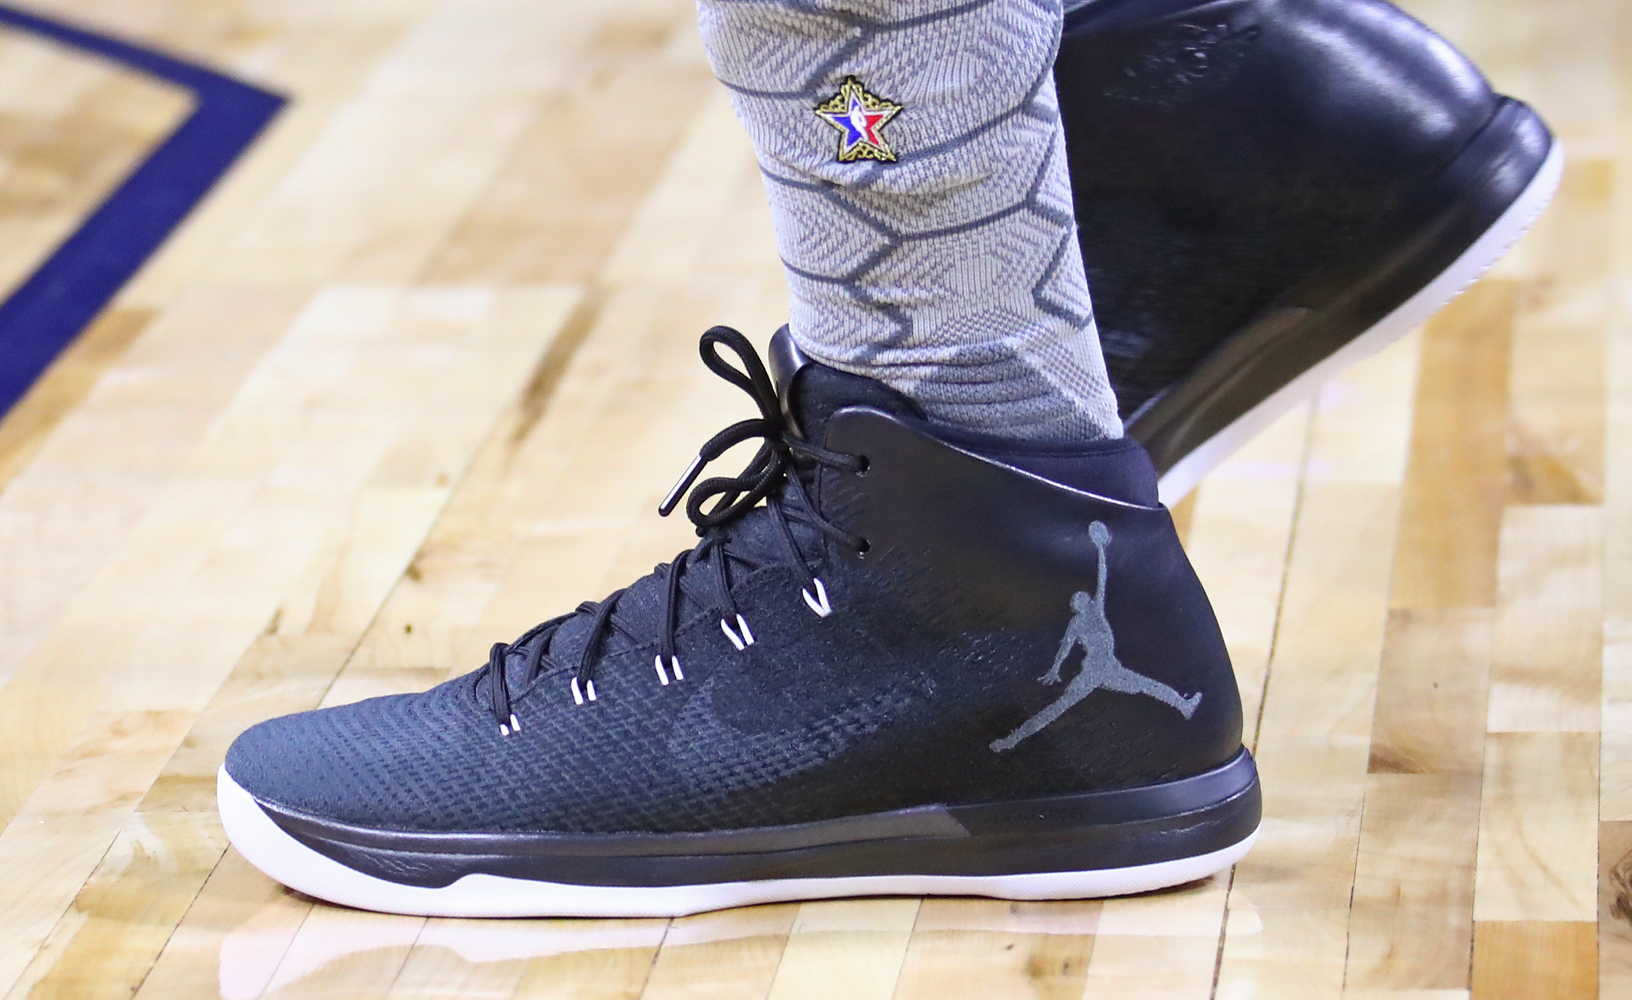 Worn by Jimmy Butler at NBA All-Star practice